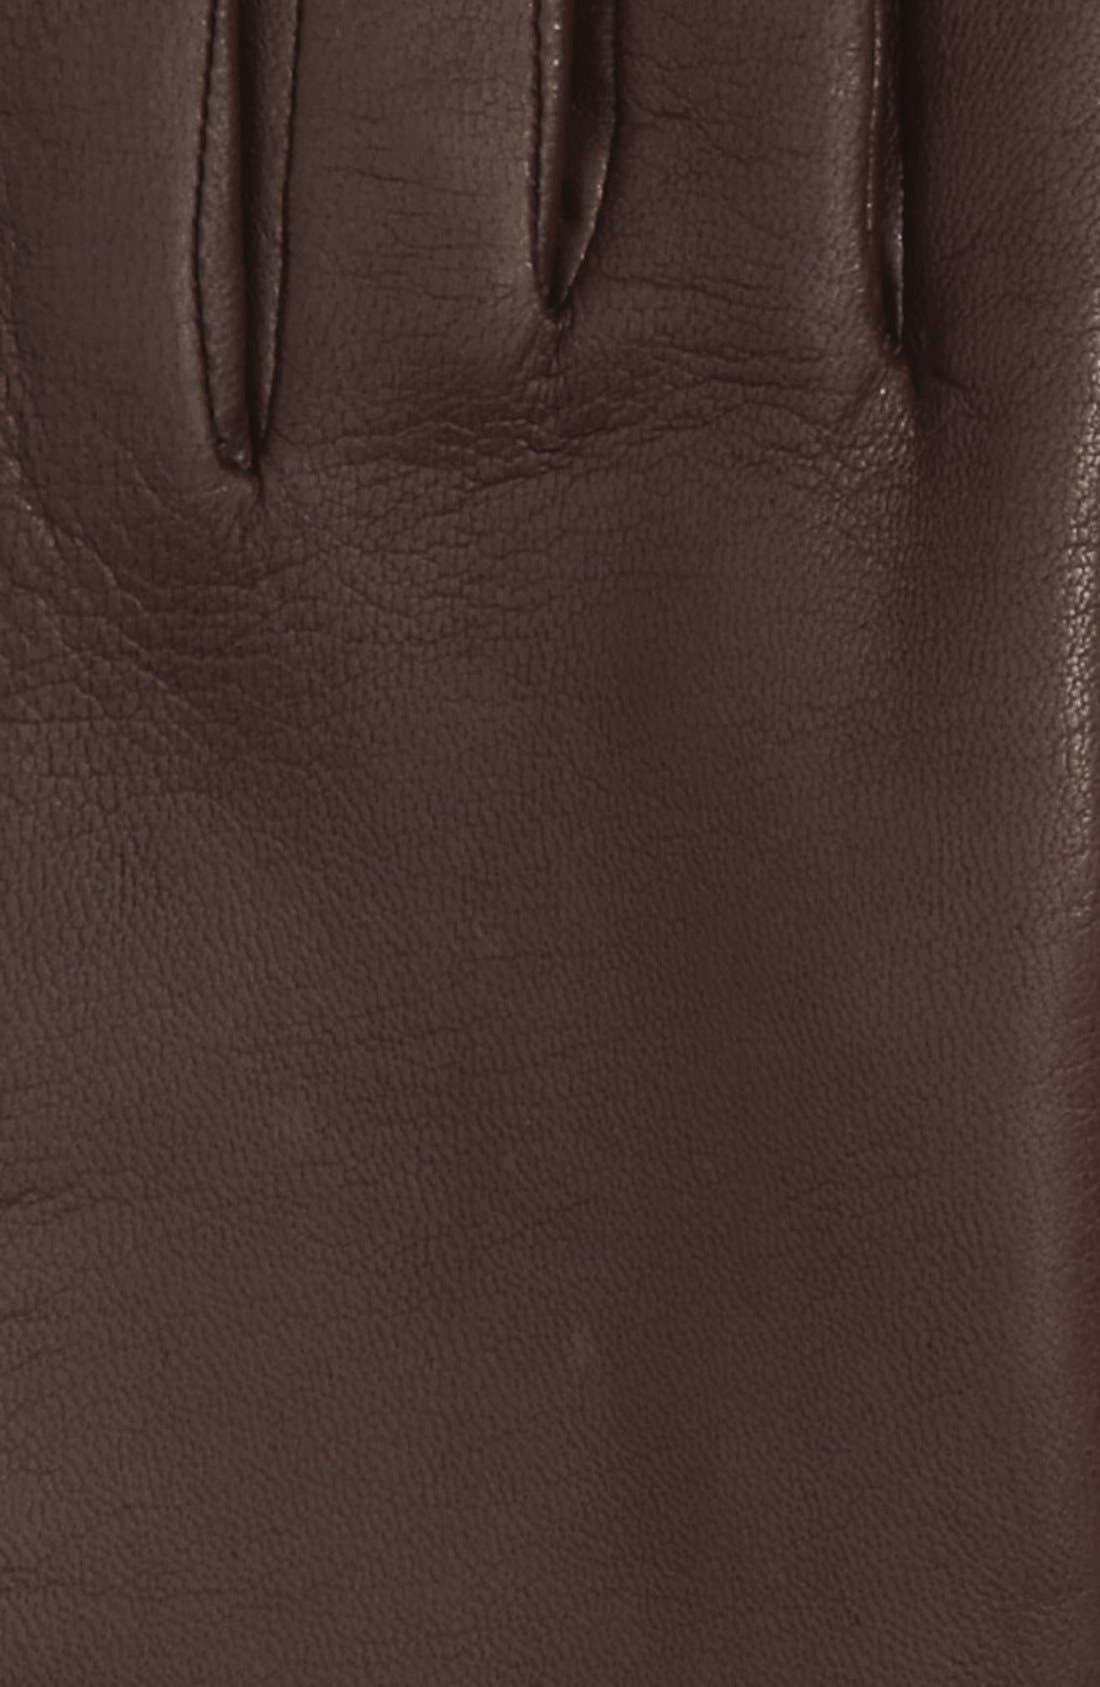 Alternate Image 3  - Fownes Brothers 'Basic Tech' Cashmere Lined Leather Gloves (Nordstrom Exclusive)